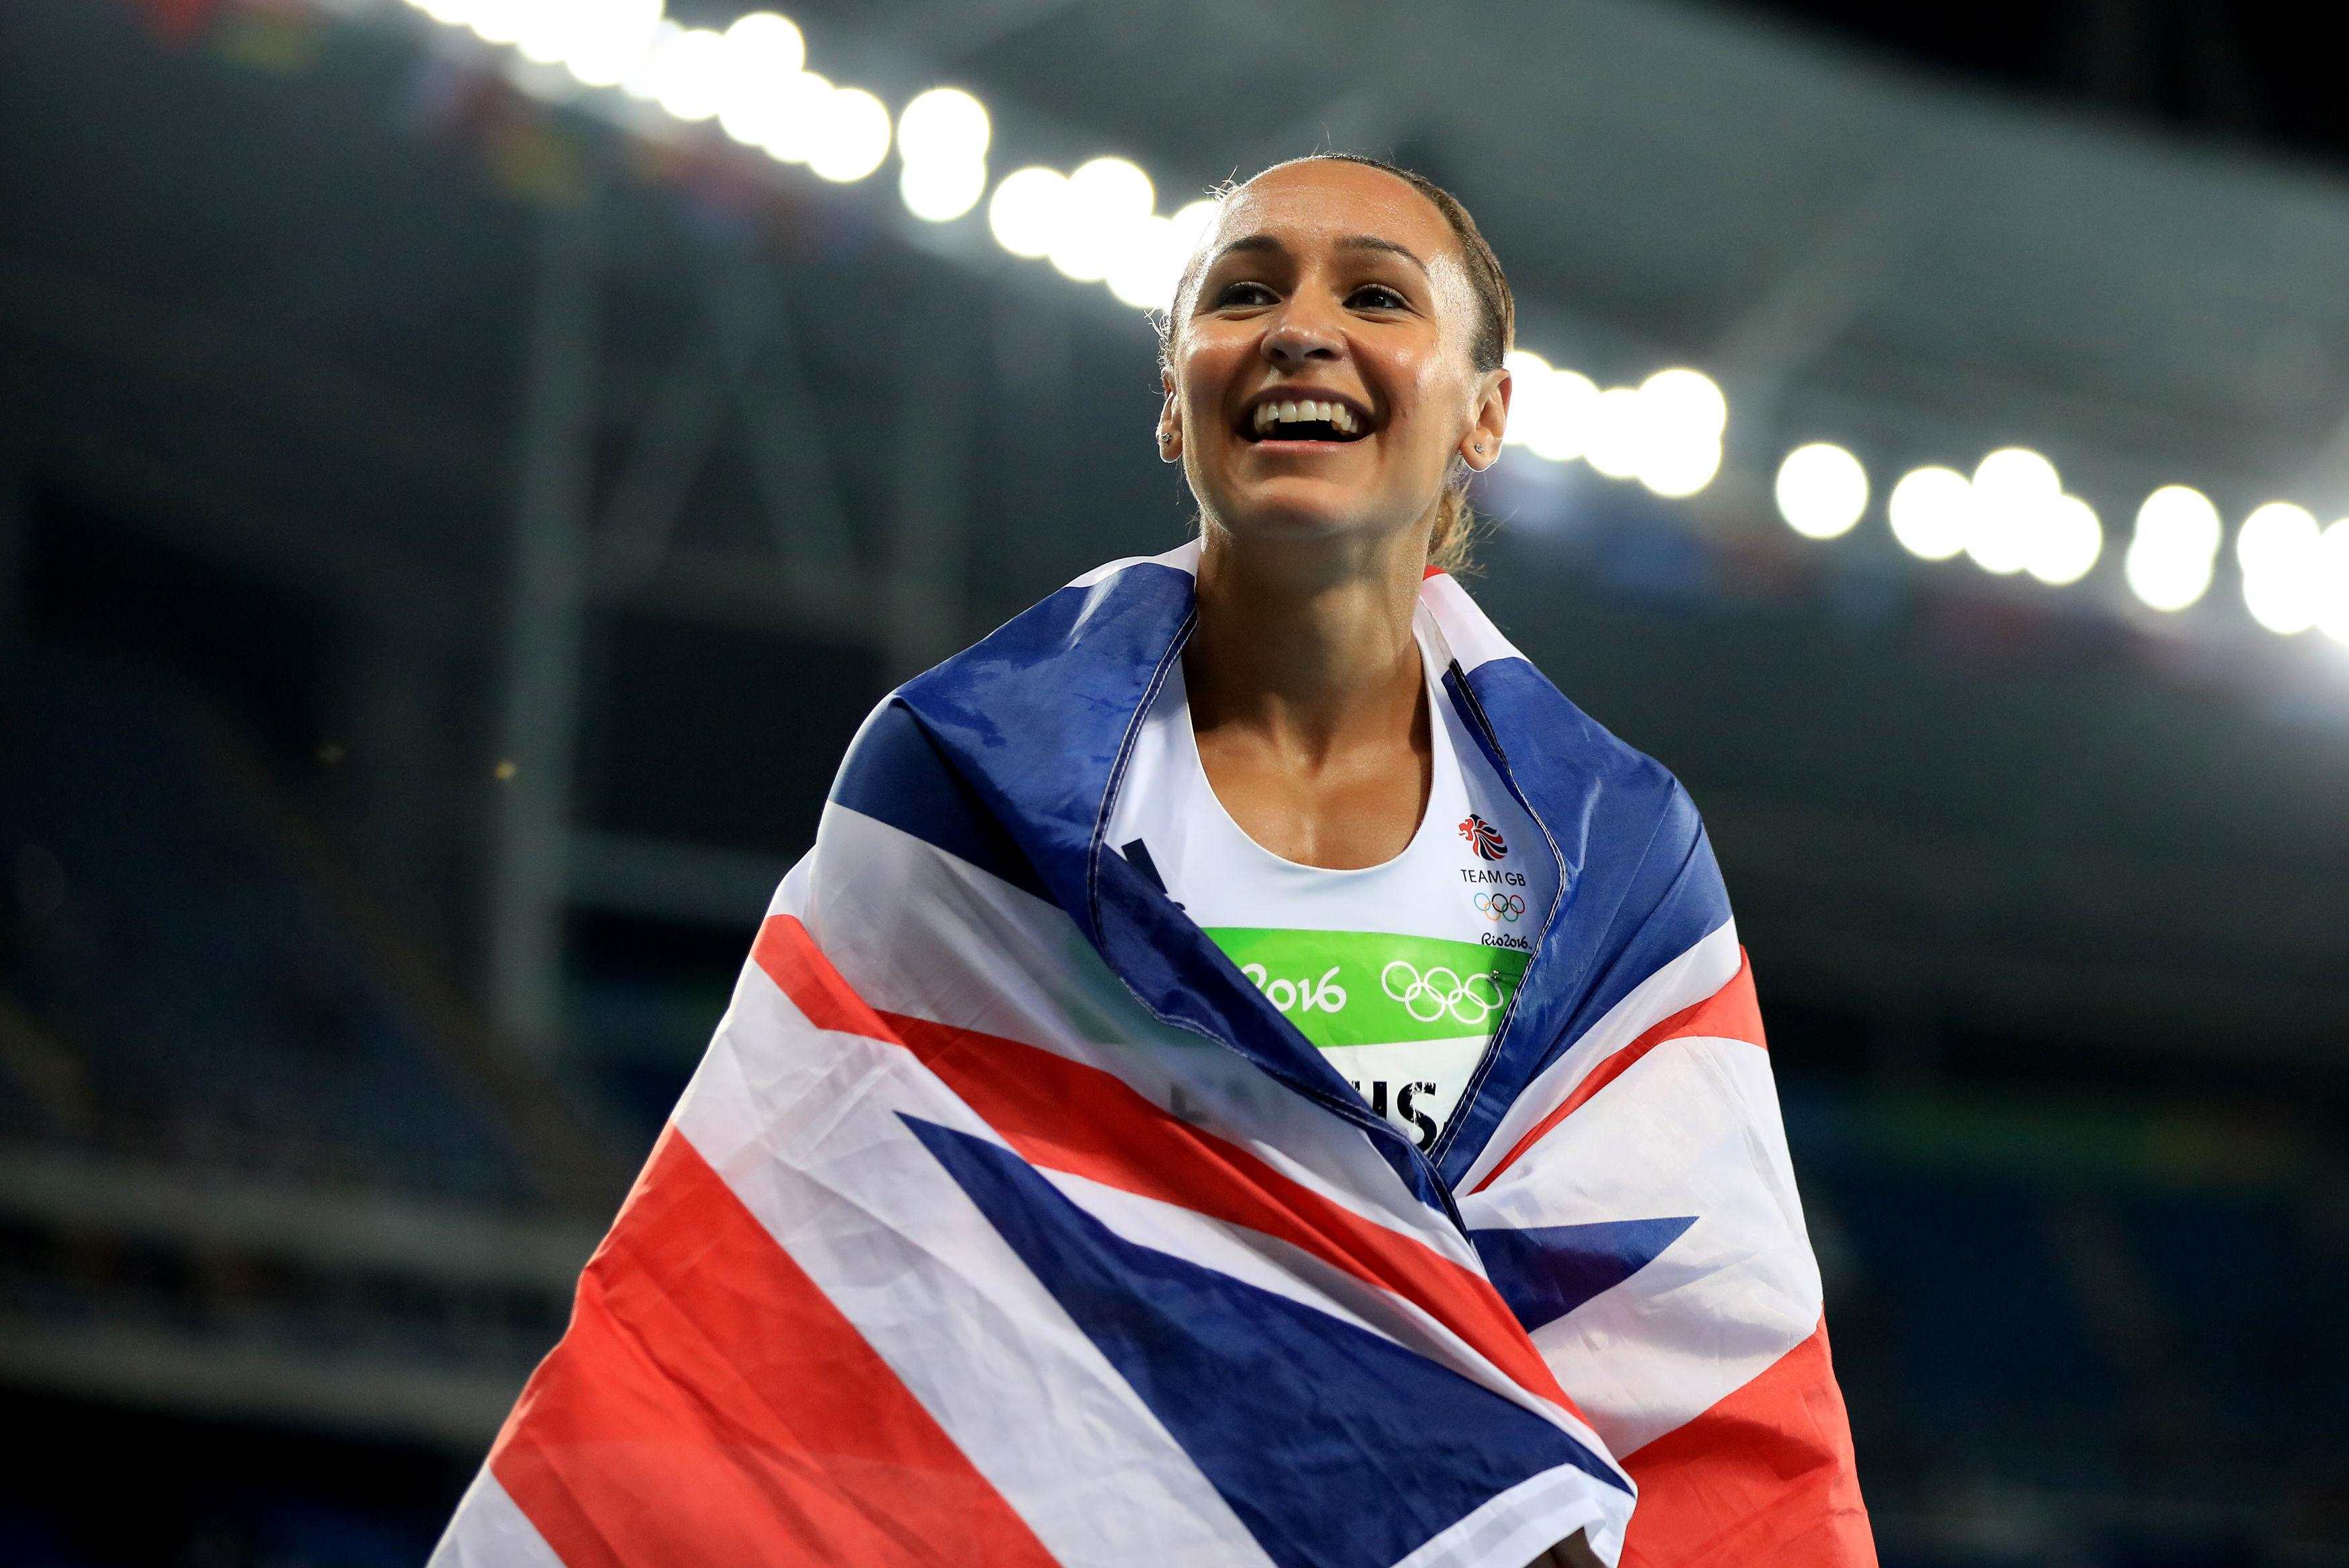 The 31-year-old has enjoyed a glittering career when she won gold medals in all of the major competitions